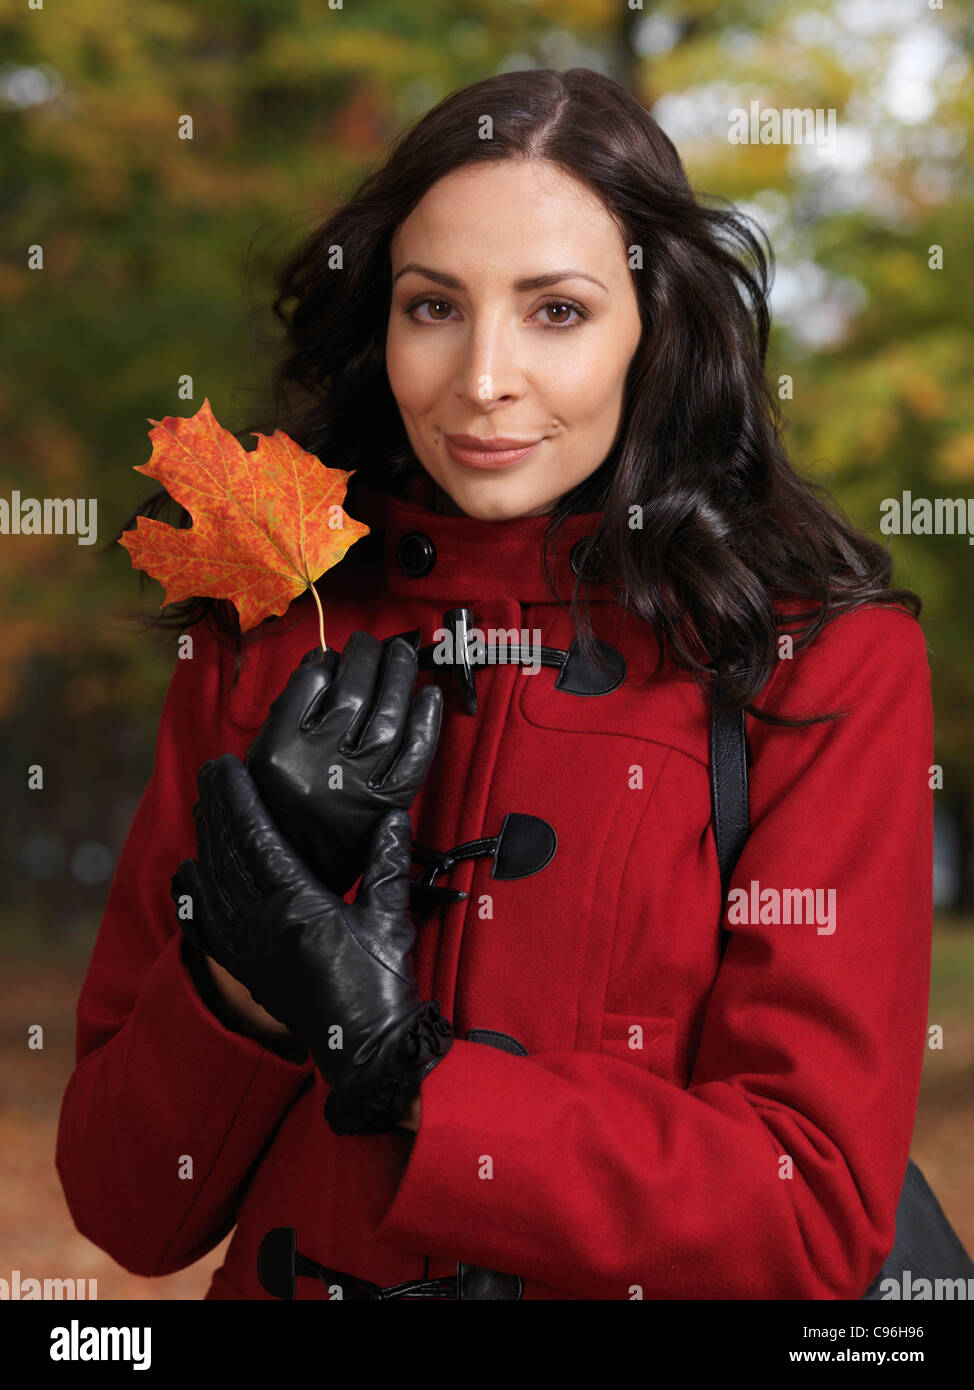 Portrait of a beautiful woman holding a red maple leaf in her hands - Stock Image